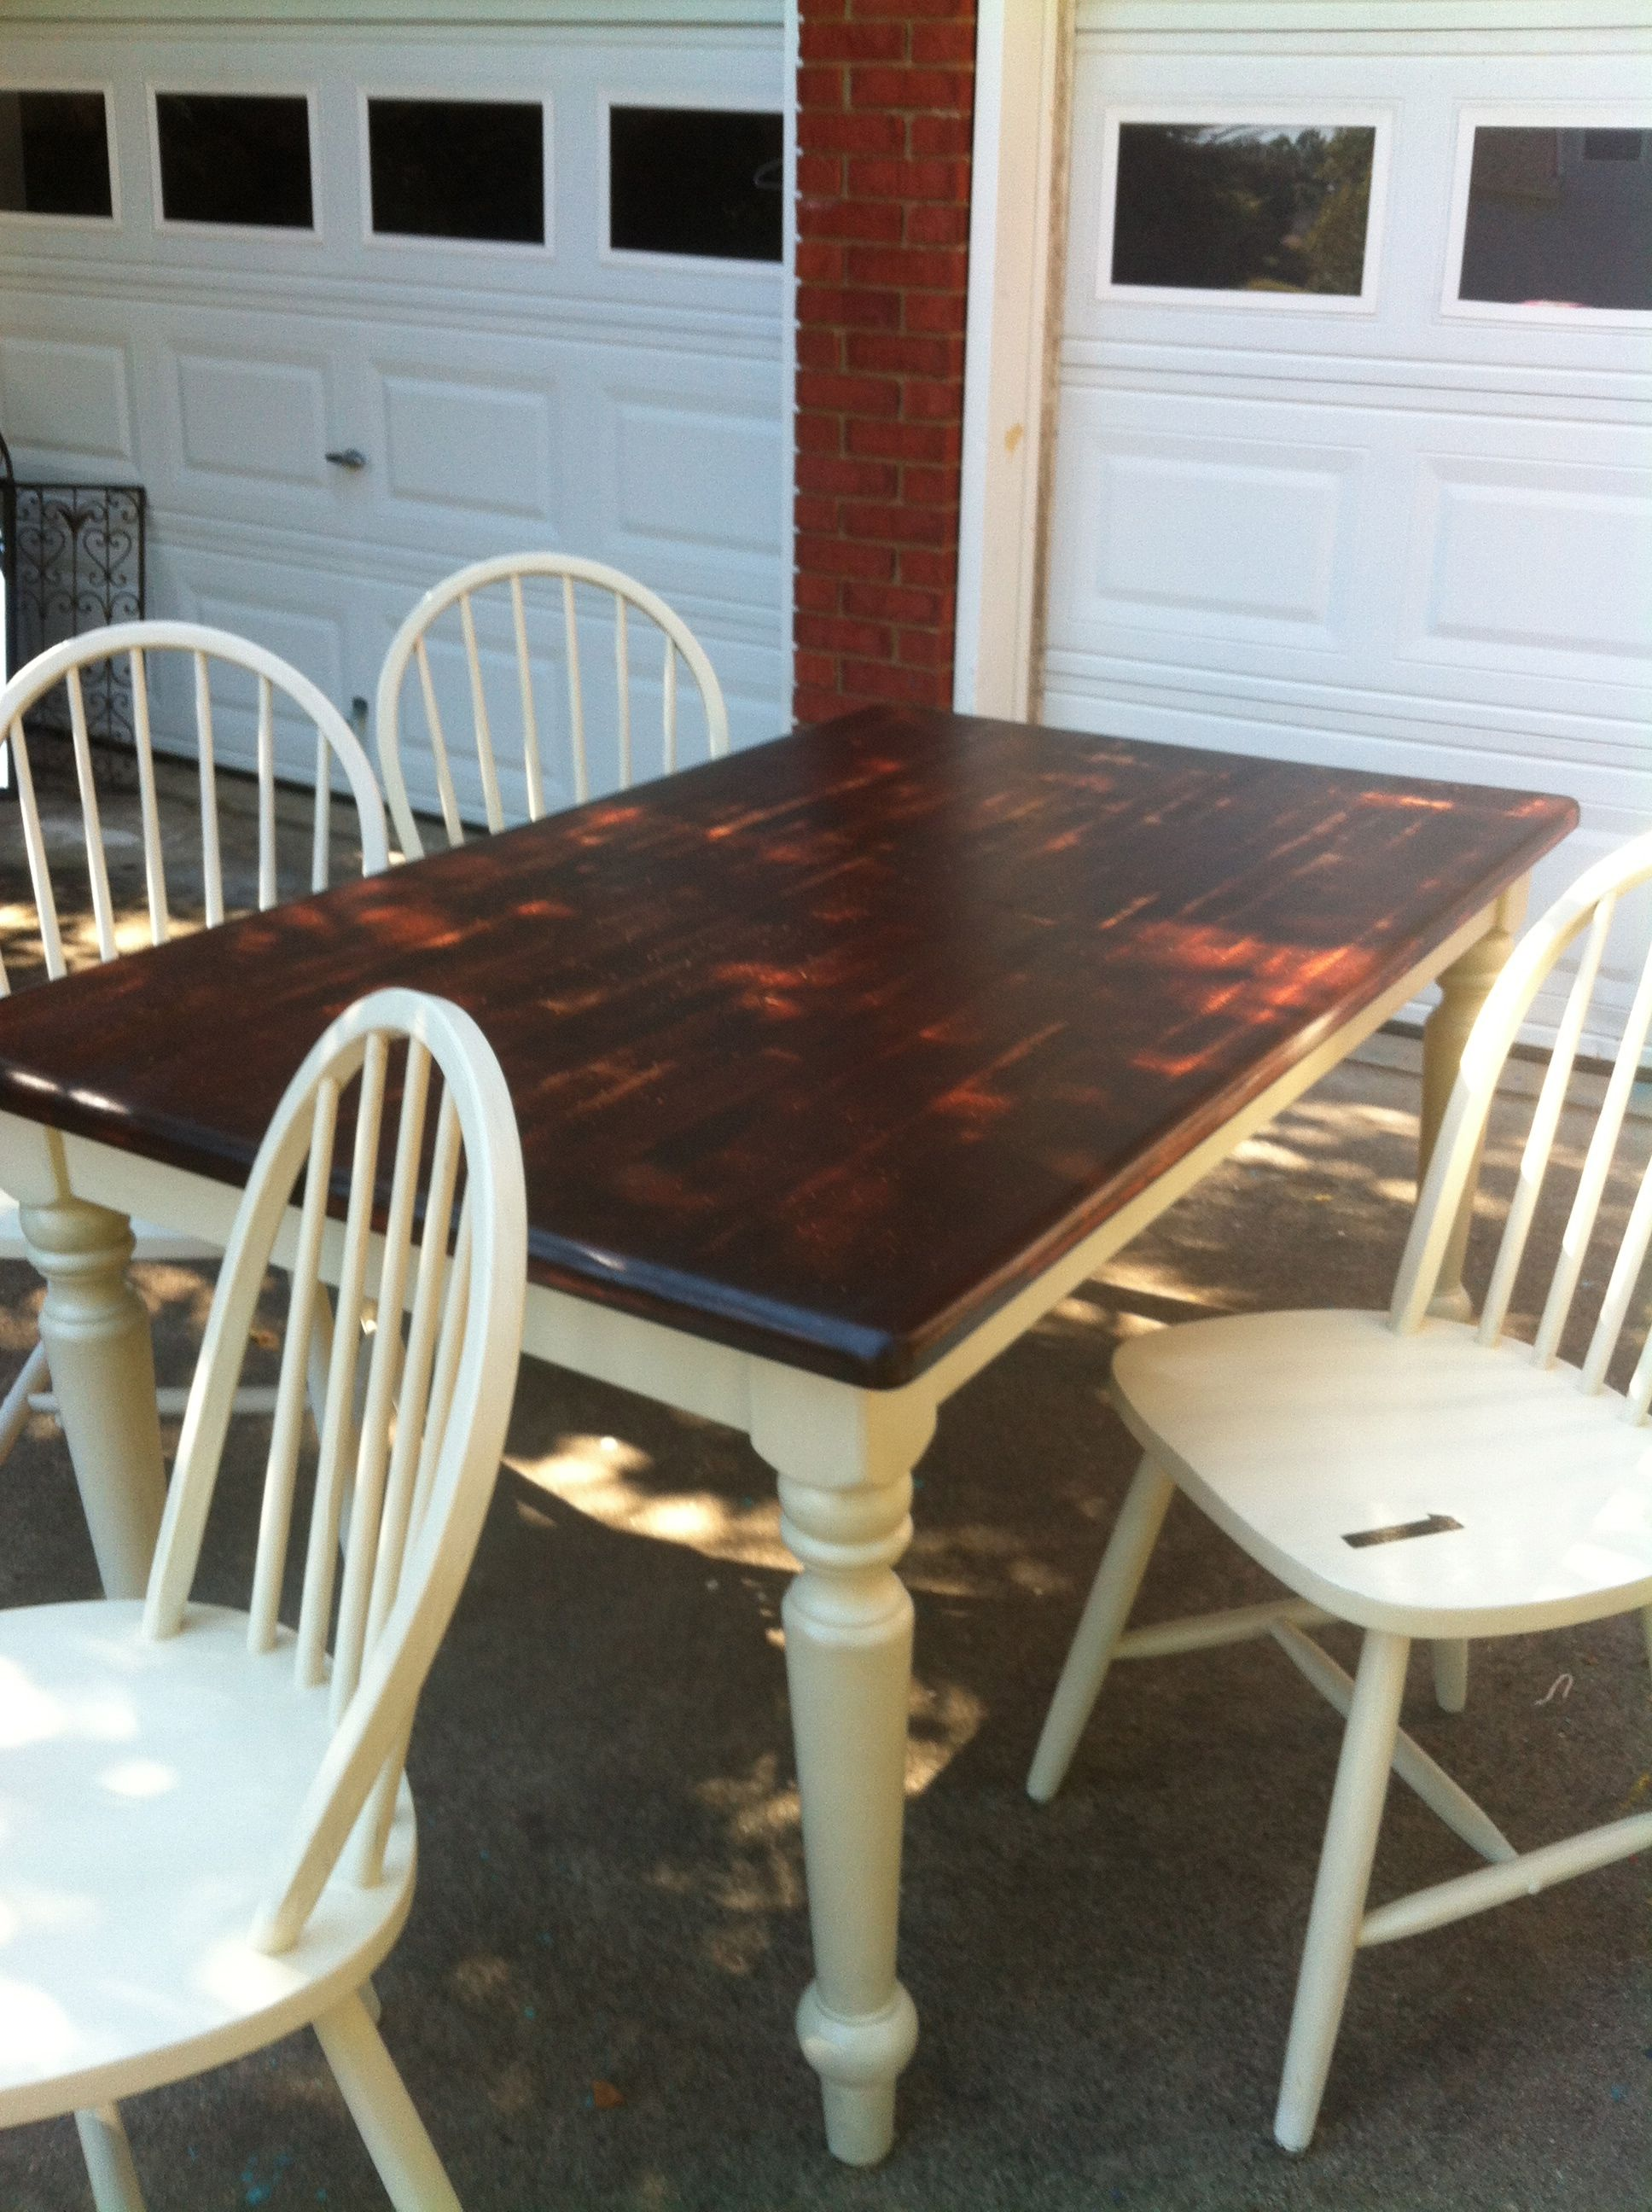 Mennonite Furniture Kitchener Refinished My Old Oak Dining Table And Chairs With Annie Sloan